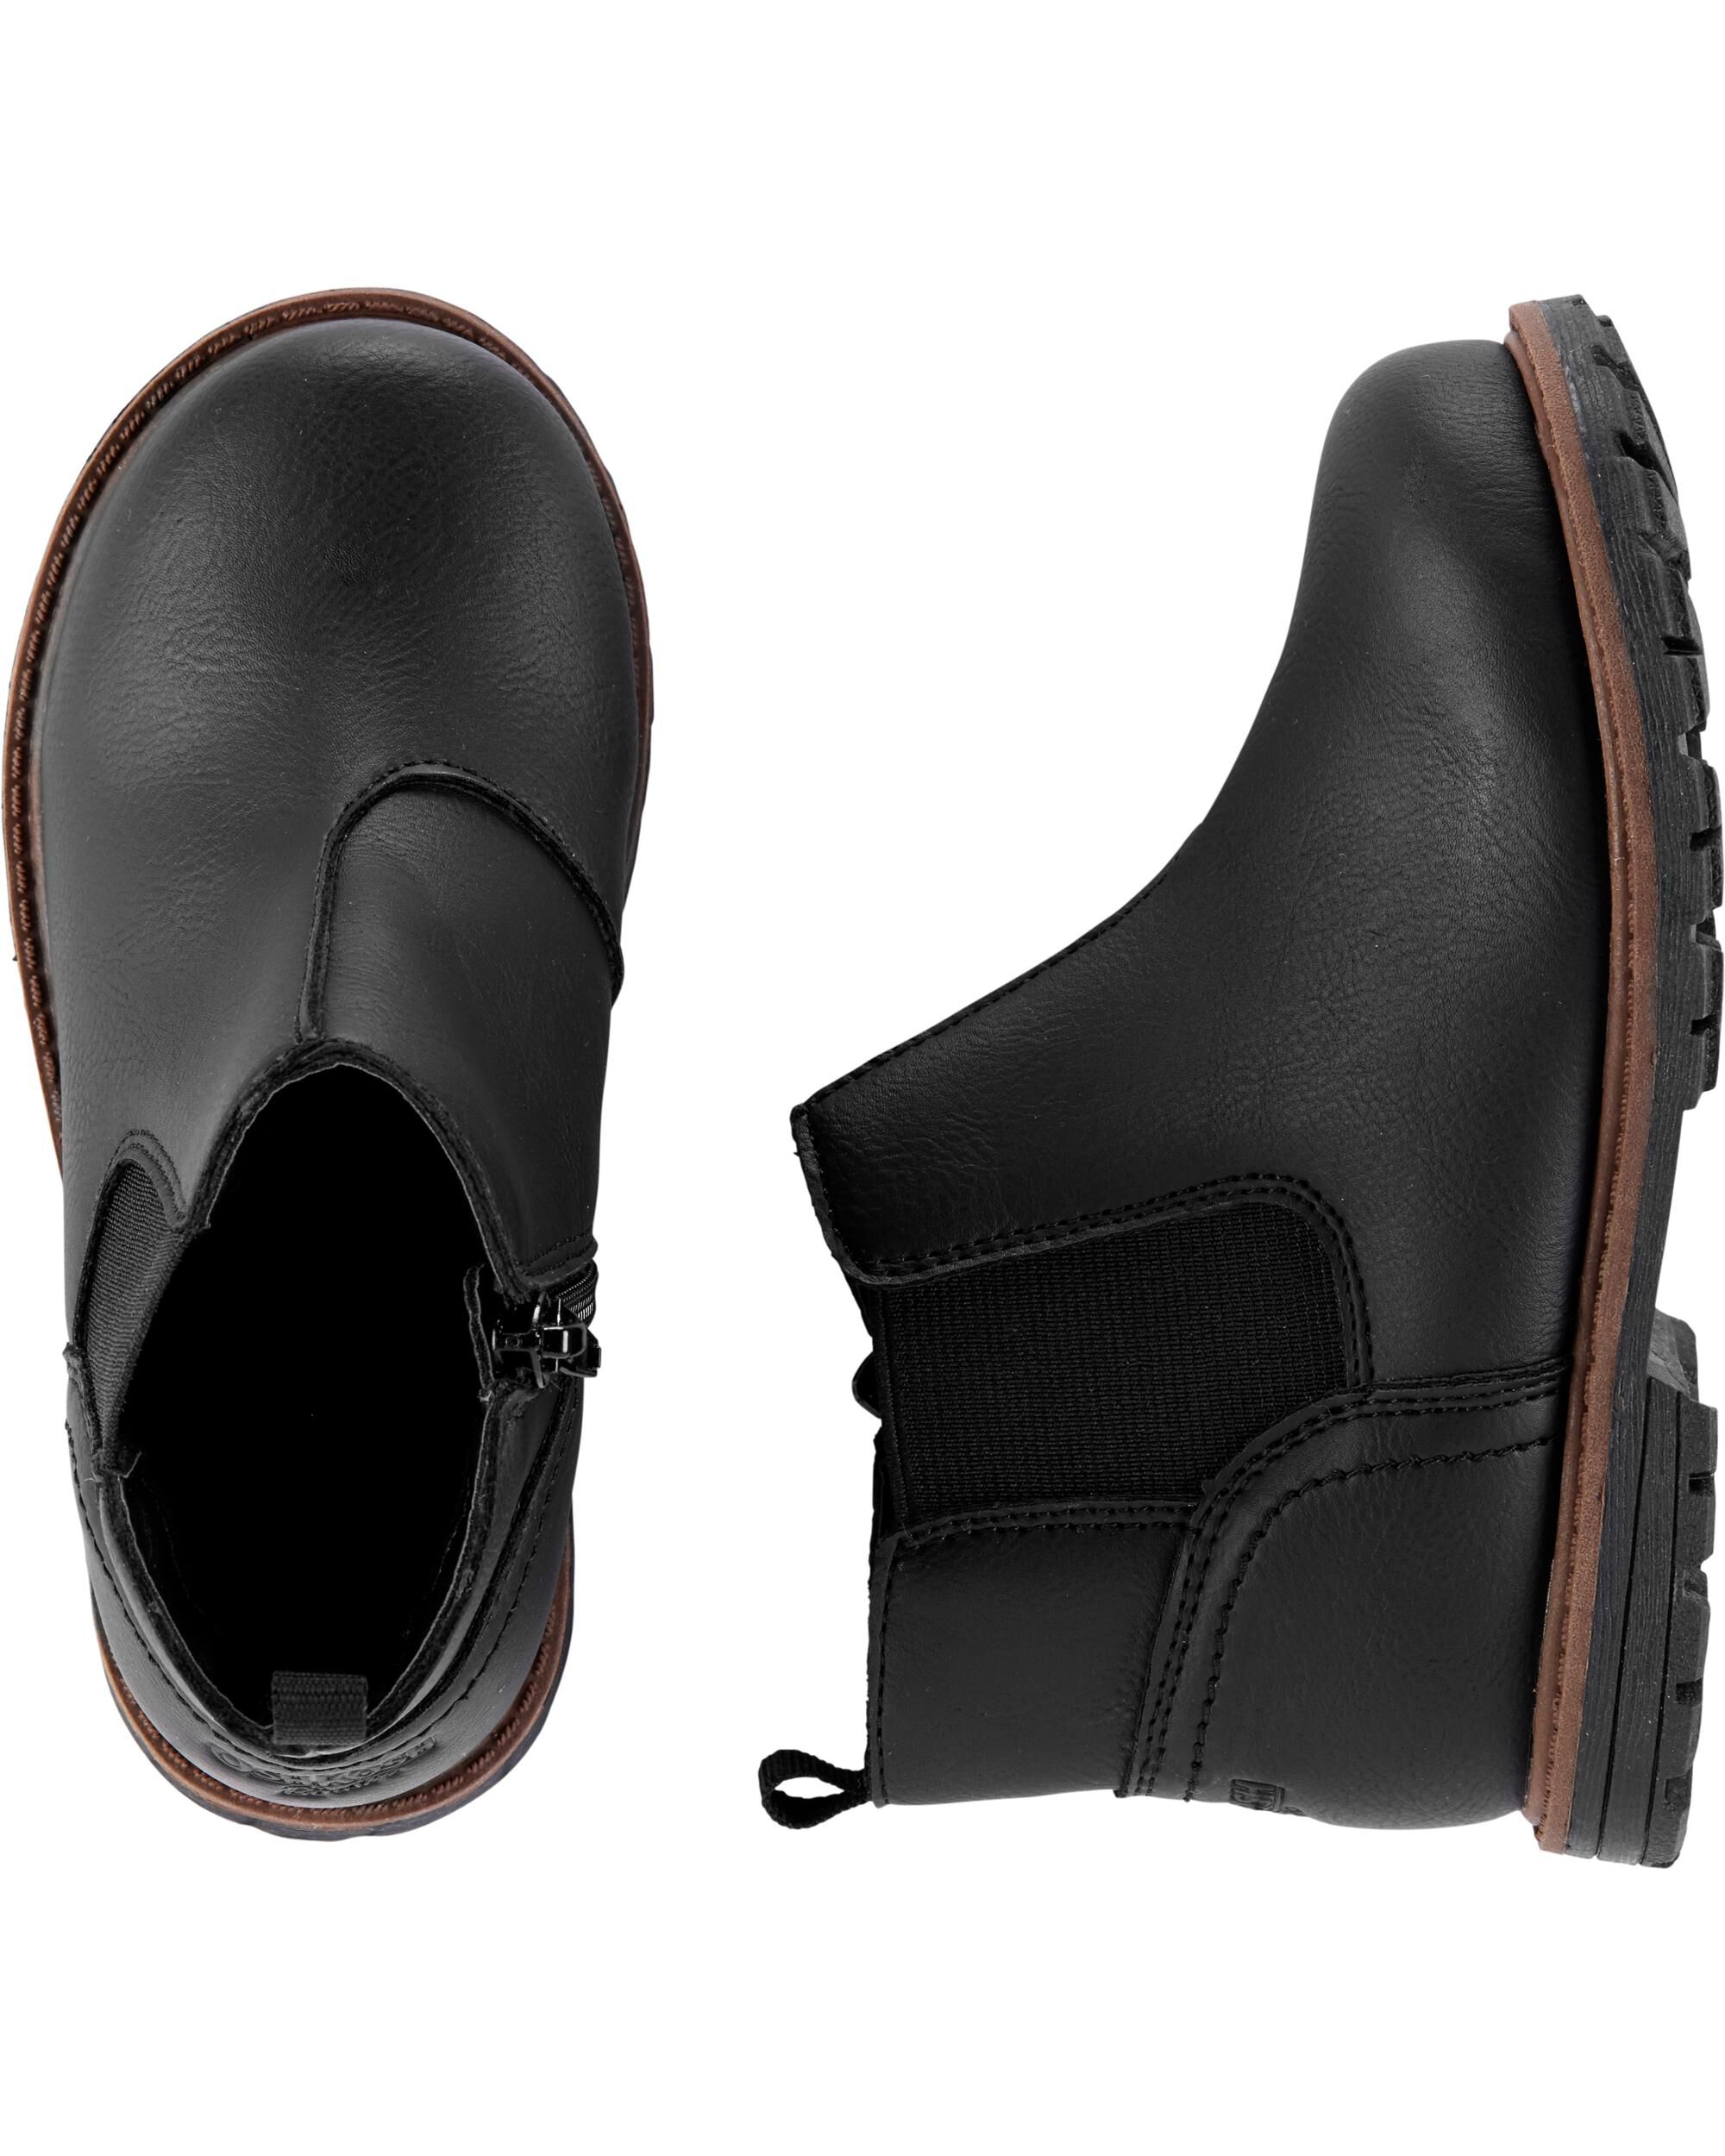 carters kids boots